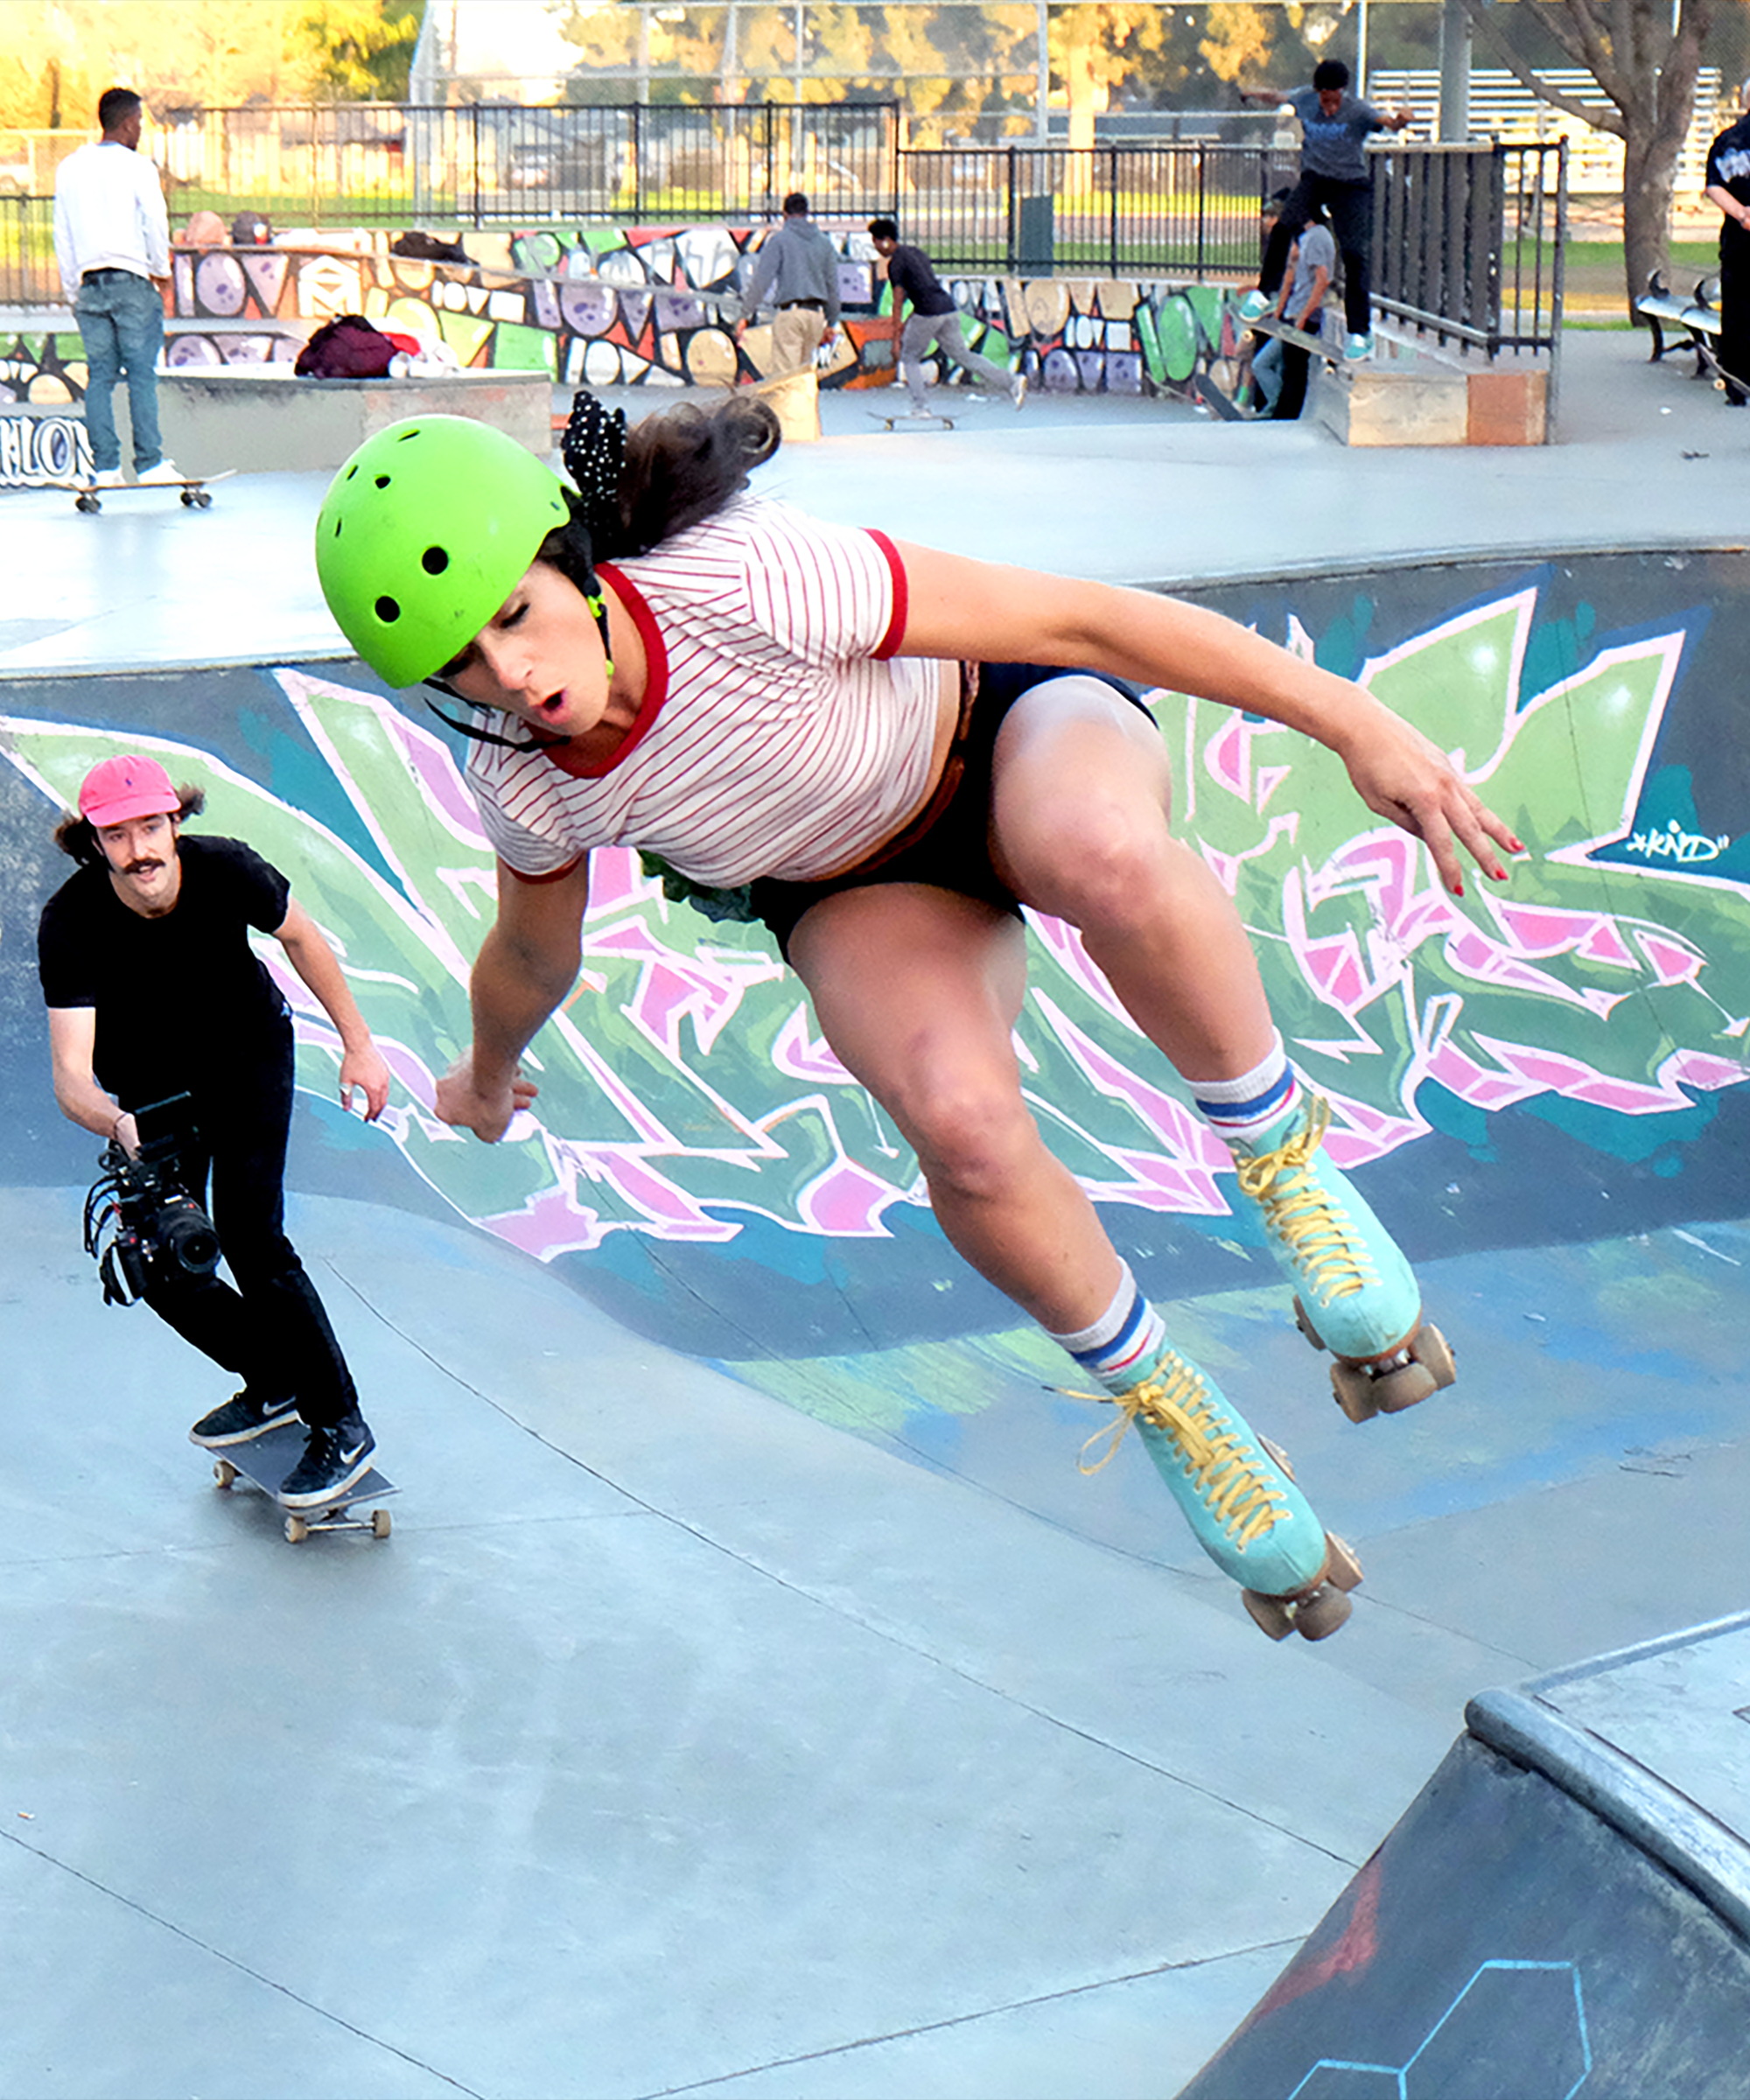 Moxi Girls Roller Skating Club - Female Only Skaters | The Moxi Skate Team  is an